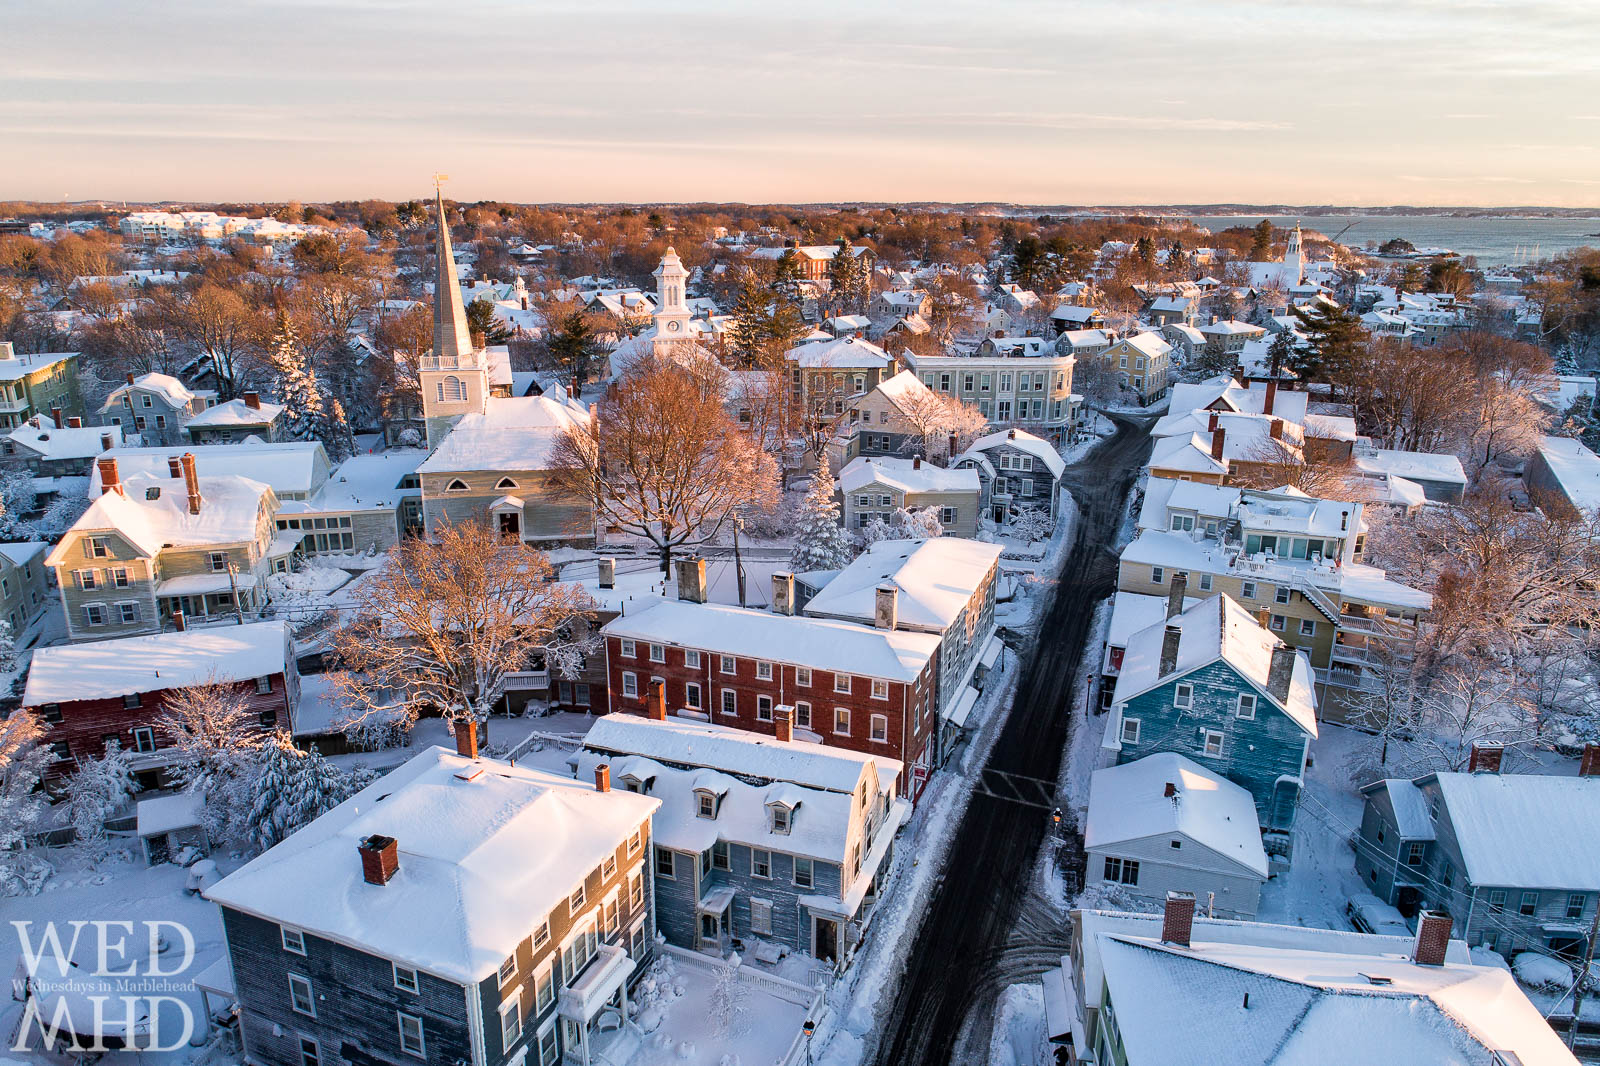 An aerial image of historic downtown Marblehead with a dusting of snow and early morning light